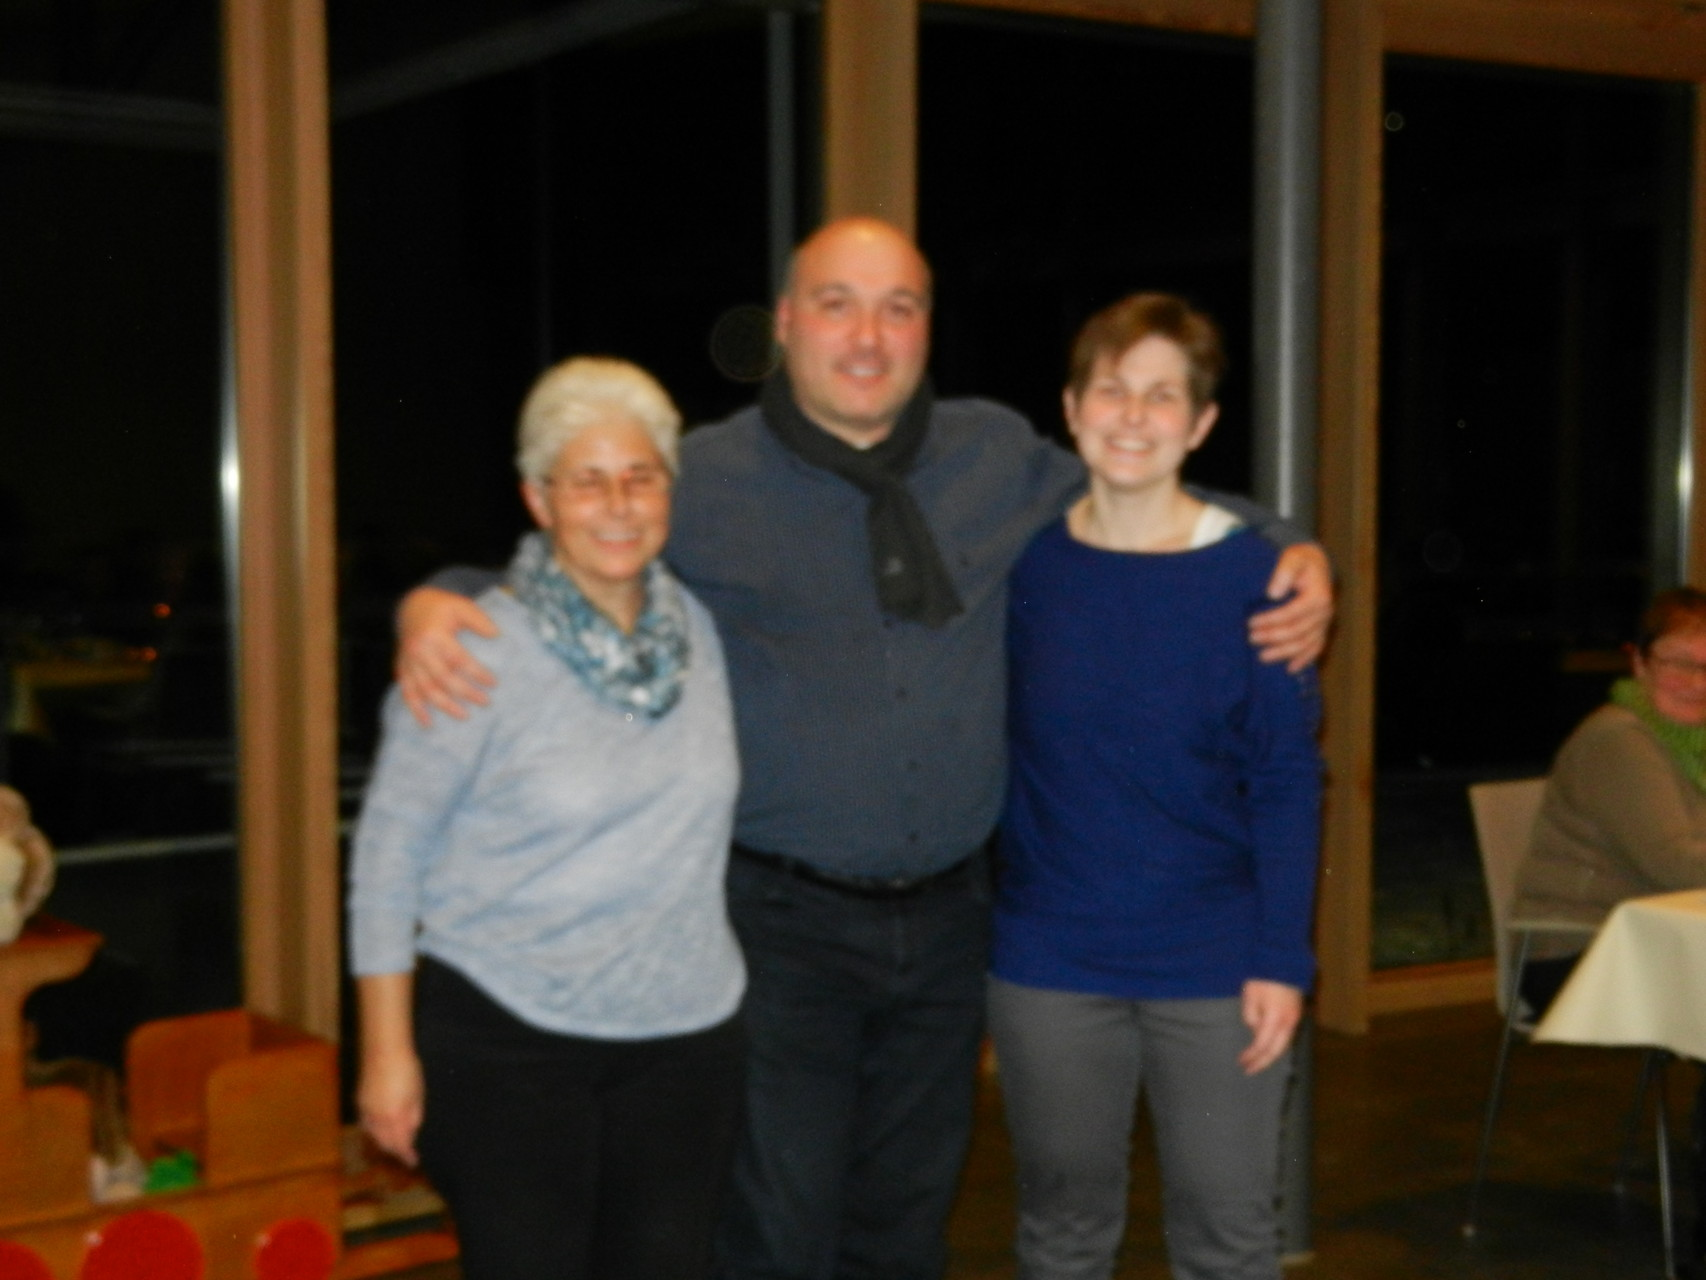 Von rechts Marie-Theres, Biagio, Claudia